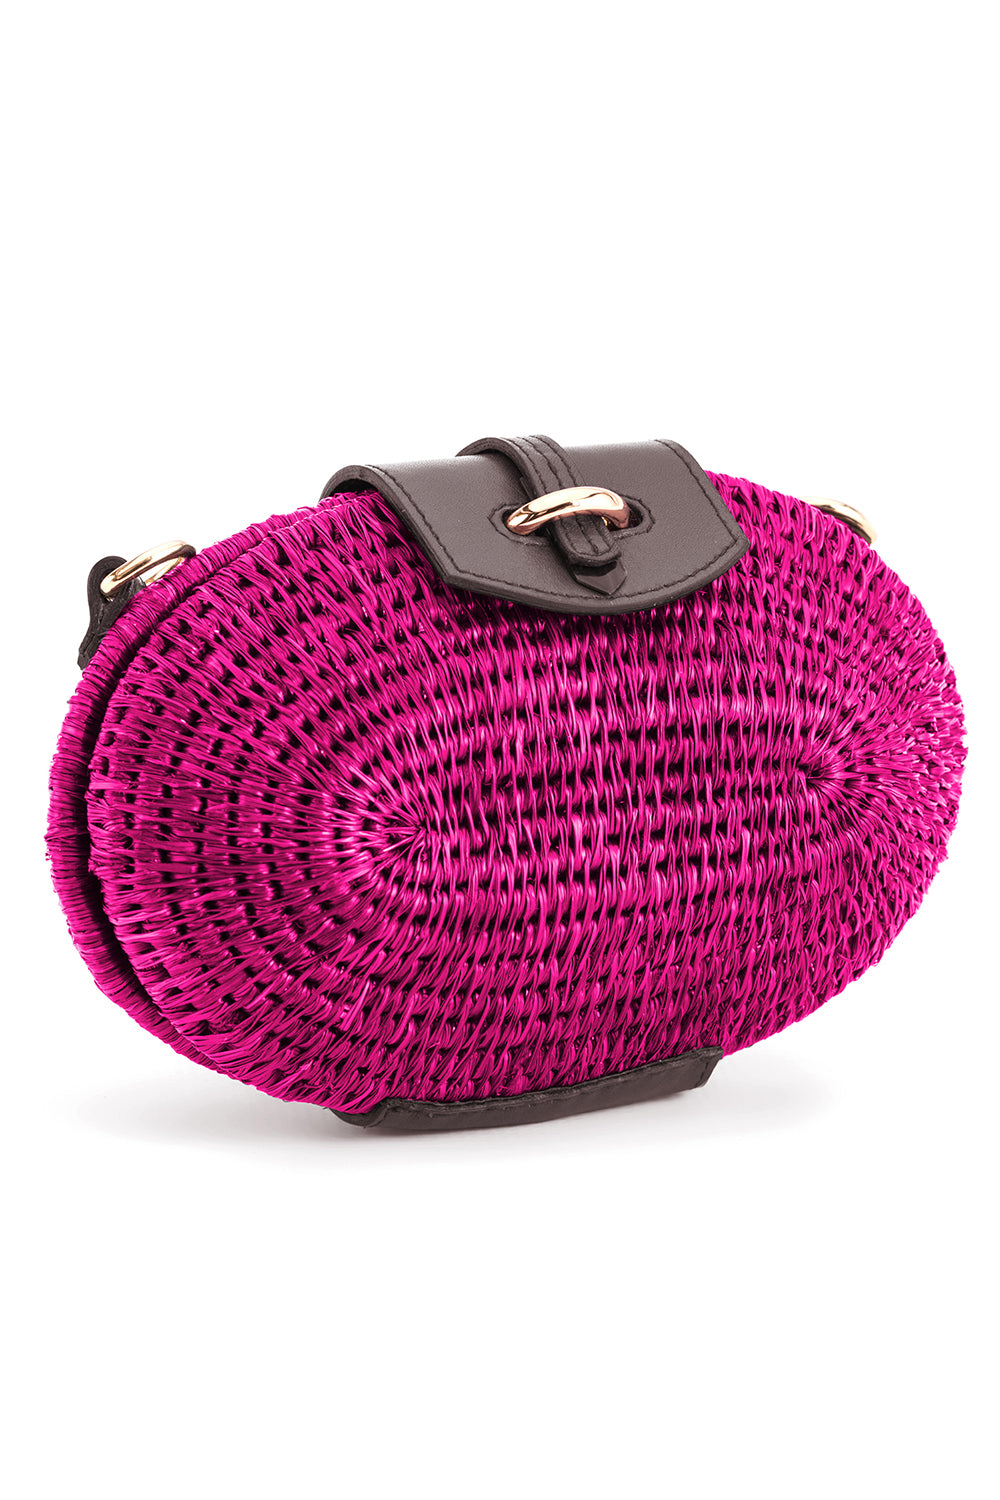 The Lindi Minaudiere Bag in Hot Pink